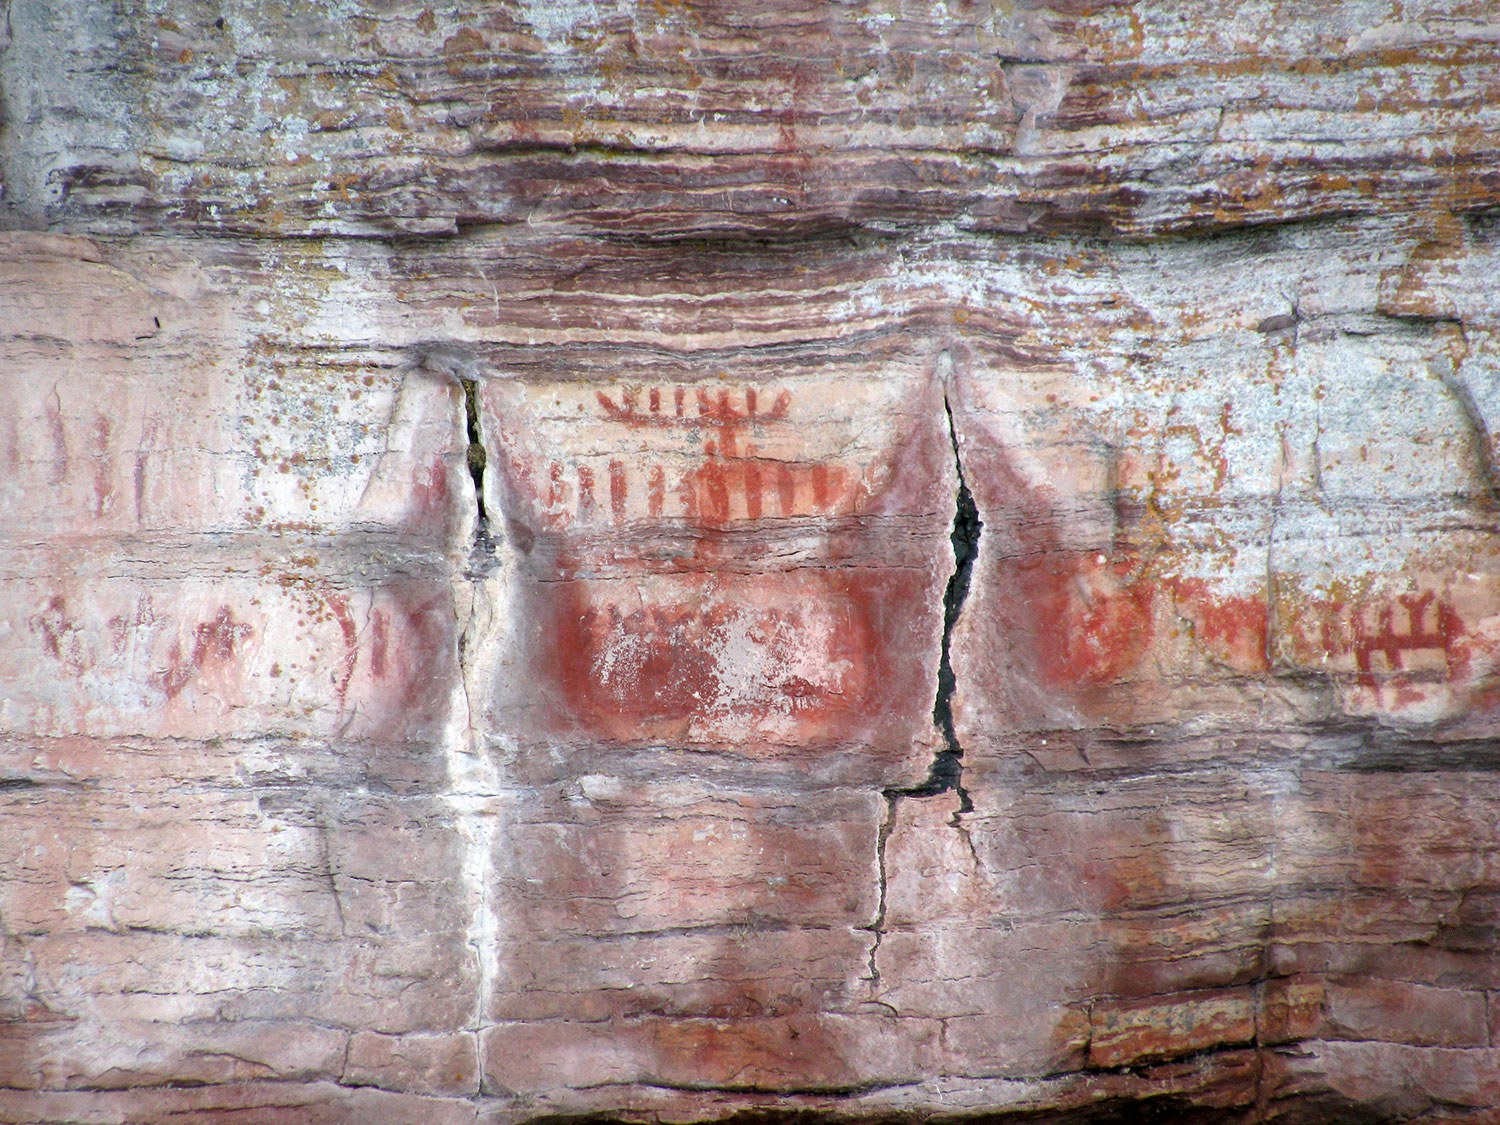 The Maymaygwayshi, or water sprite, painted on a cliff near the mouth of the Nipigon River